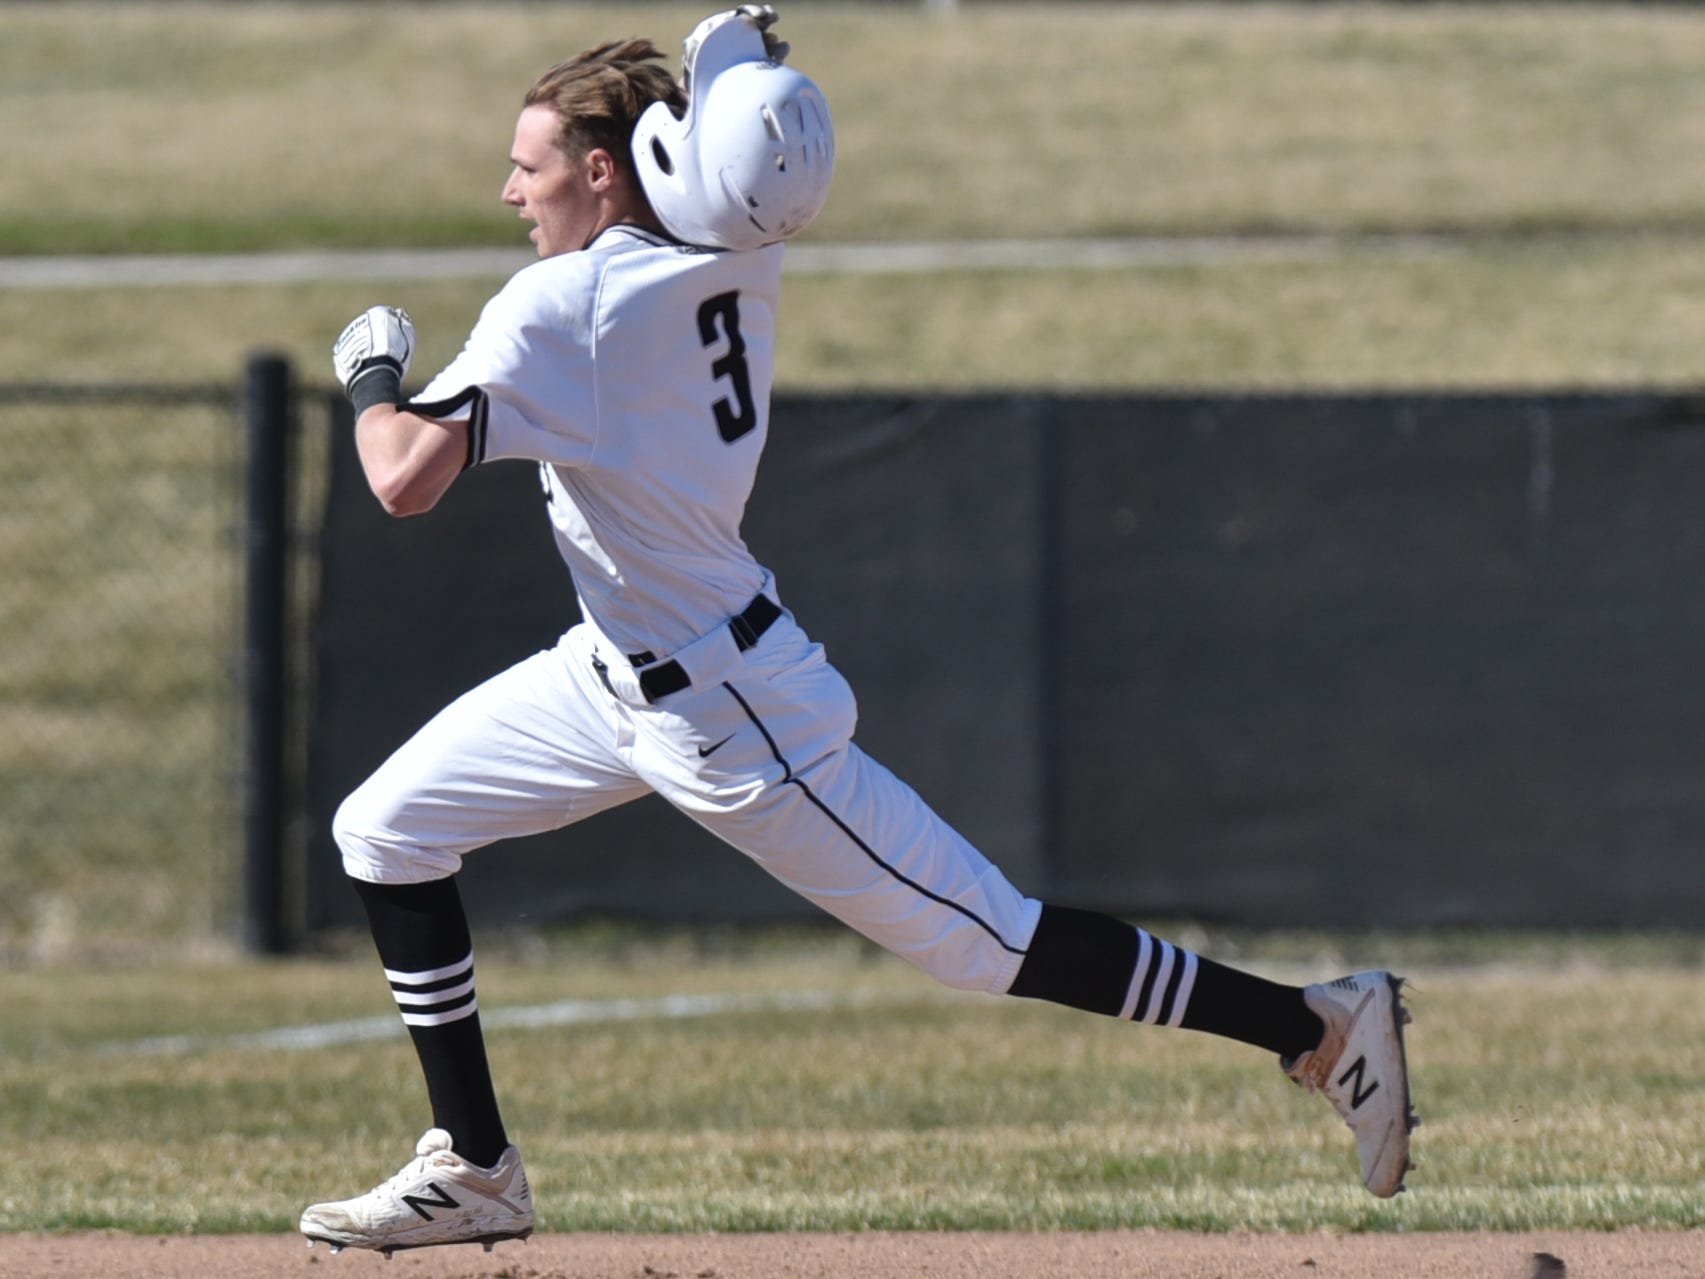 Plymouth's Anthony Sharkas nearly loses his batting helmet as he flies towards third for a triple early in the game. Sharkas came home on a homer by teammate Alec Bashears.